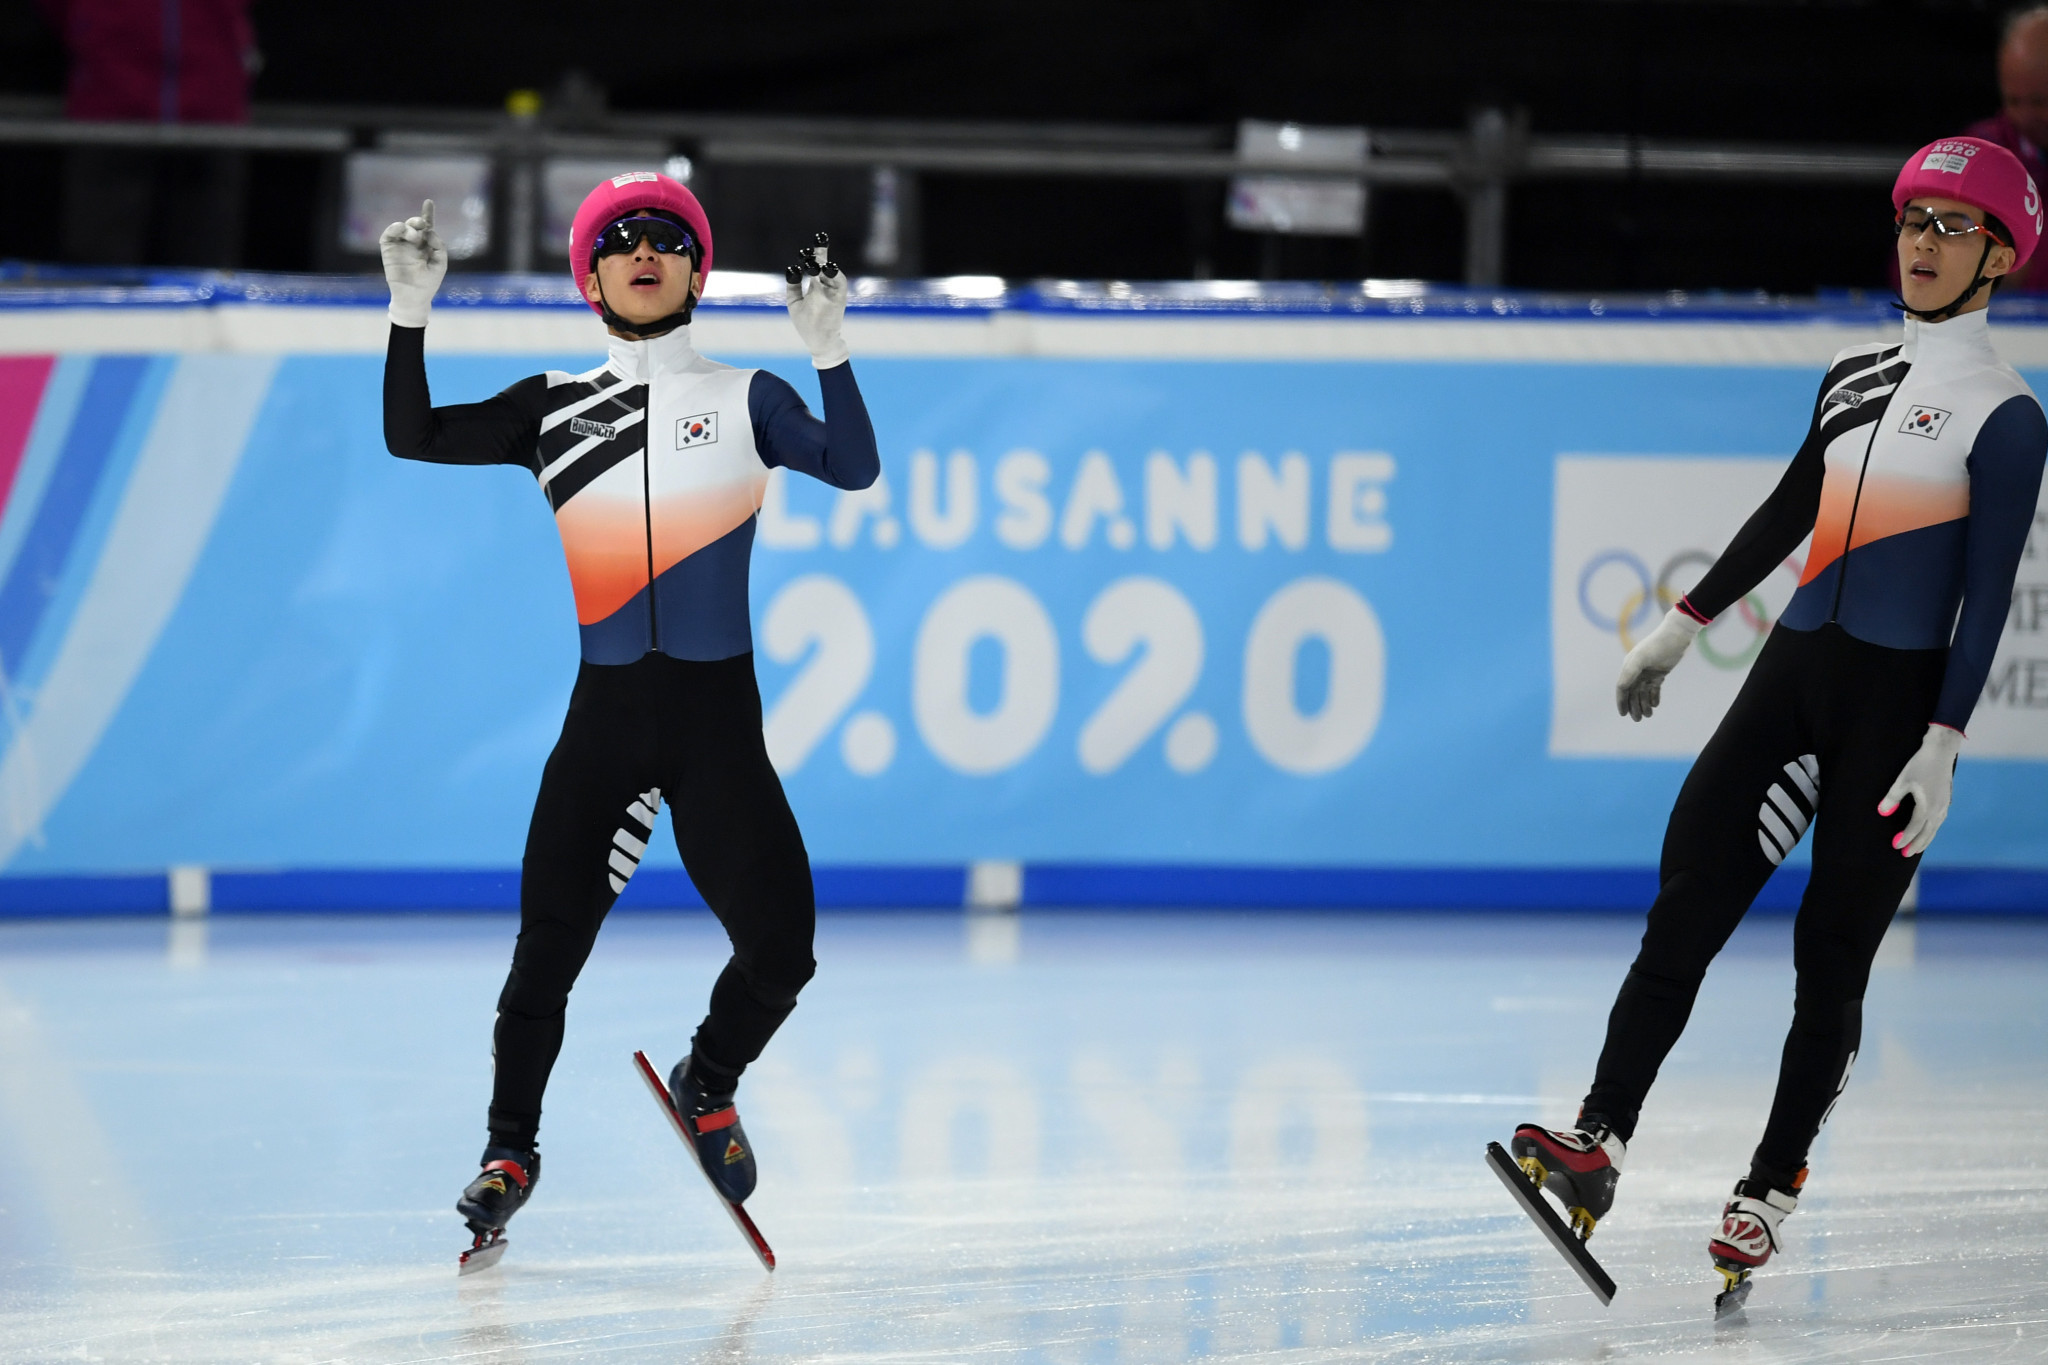 Lee Jeong-min beat team-mate Jang Sung-woo to win the men's 1000m gold ©Getty Images